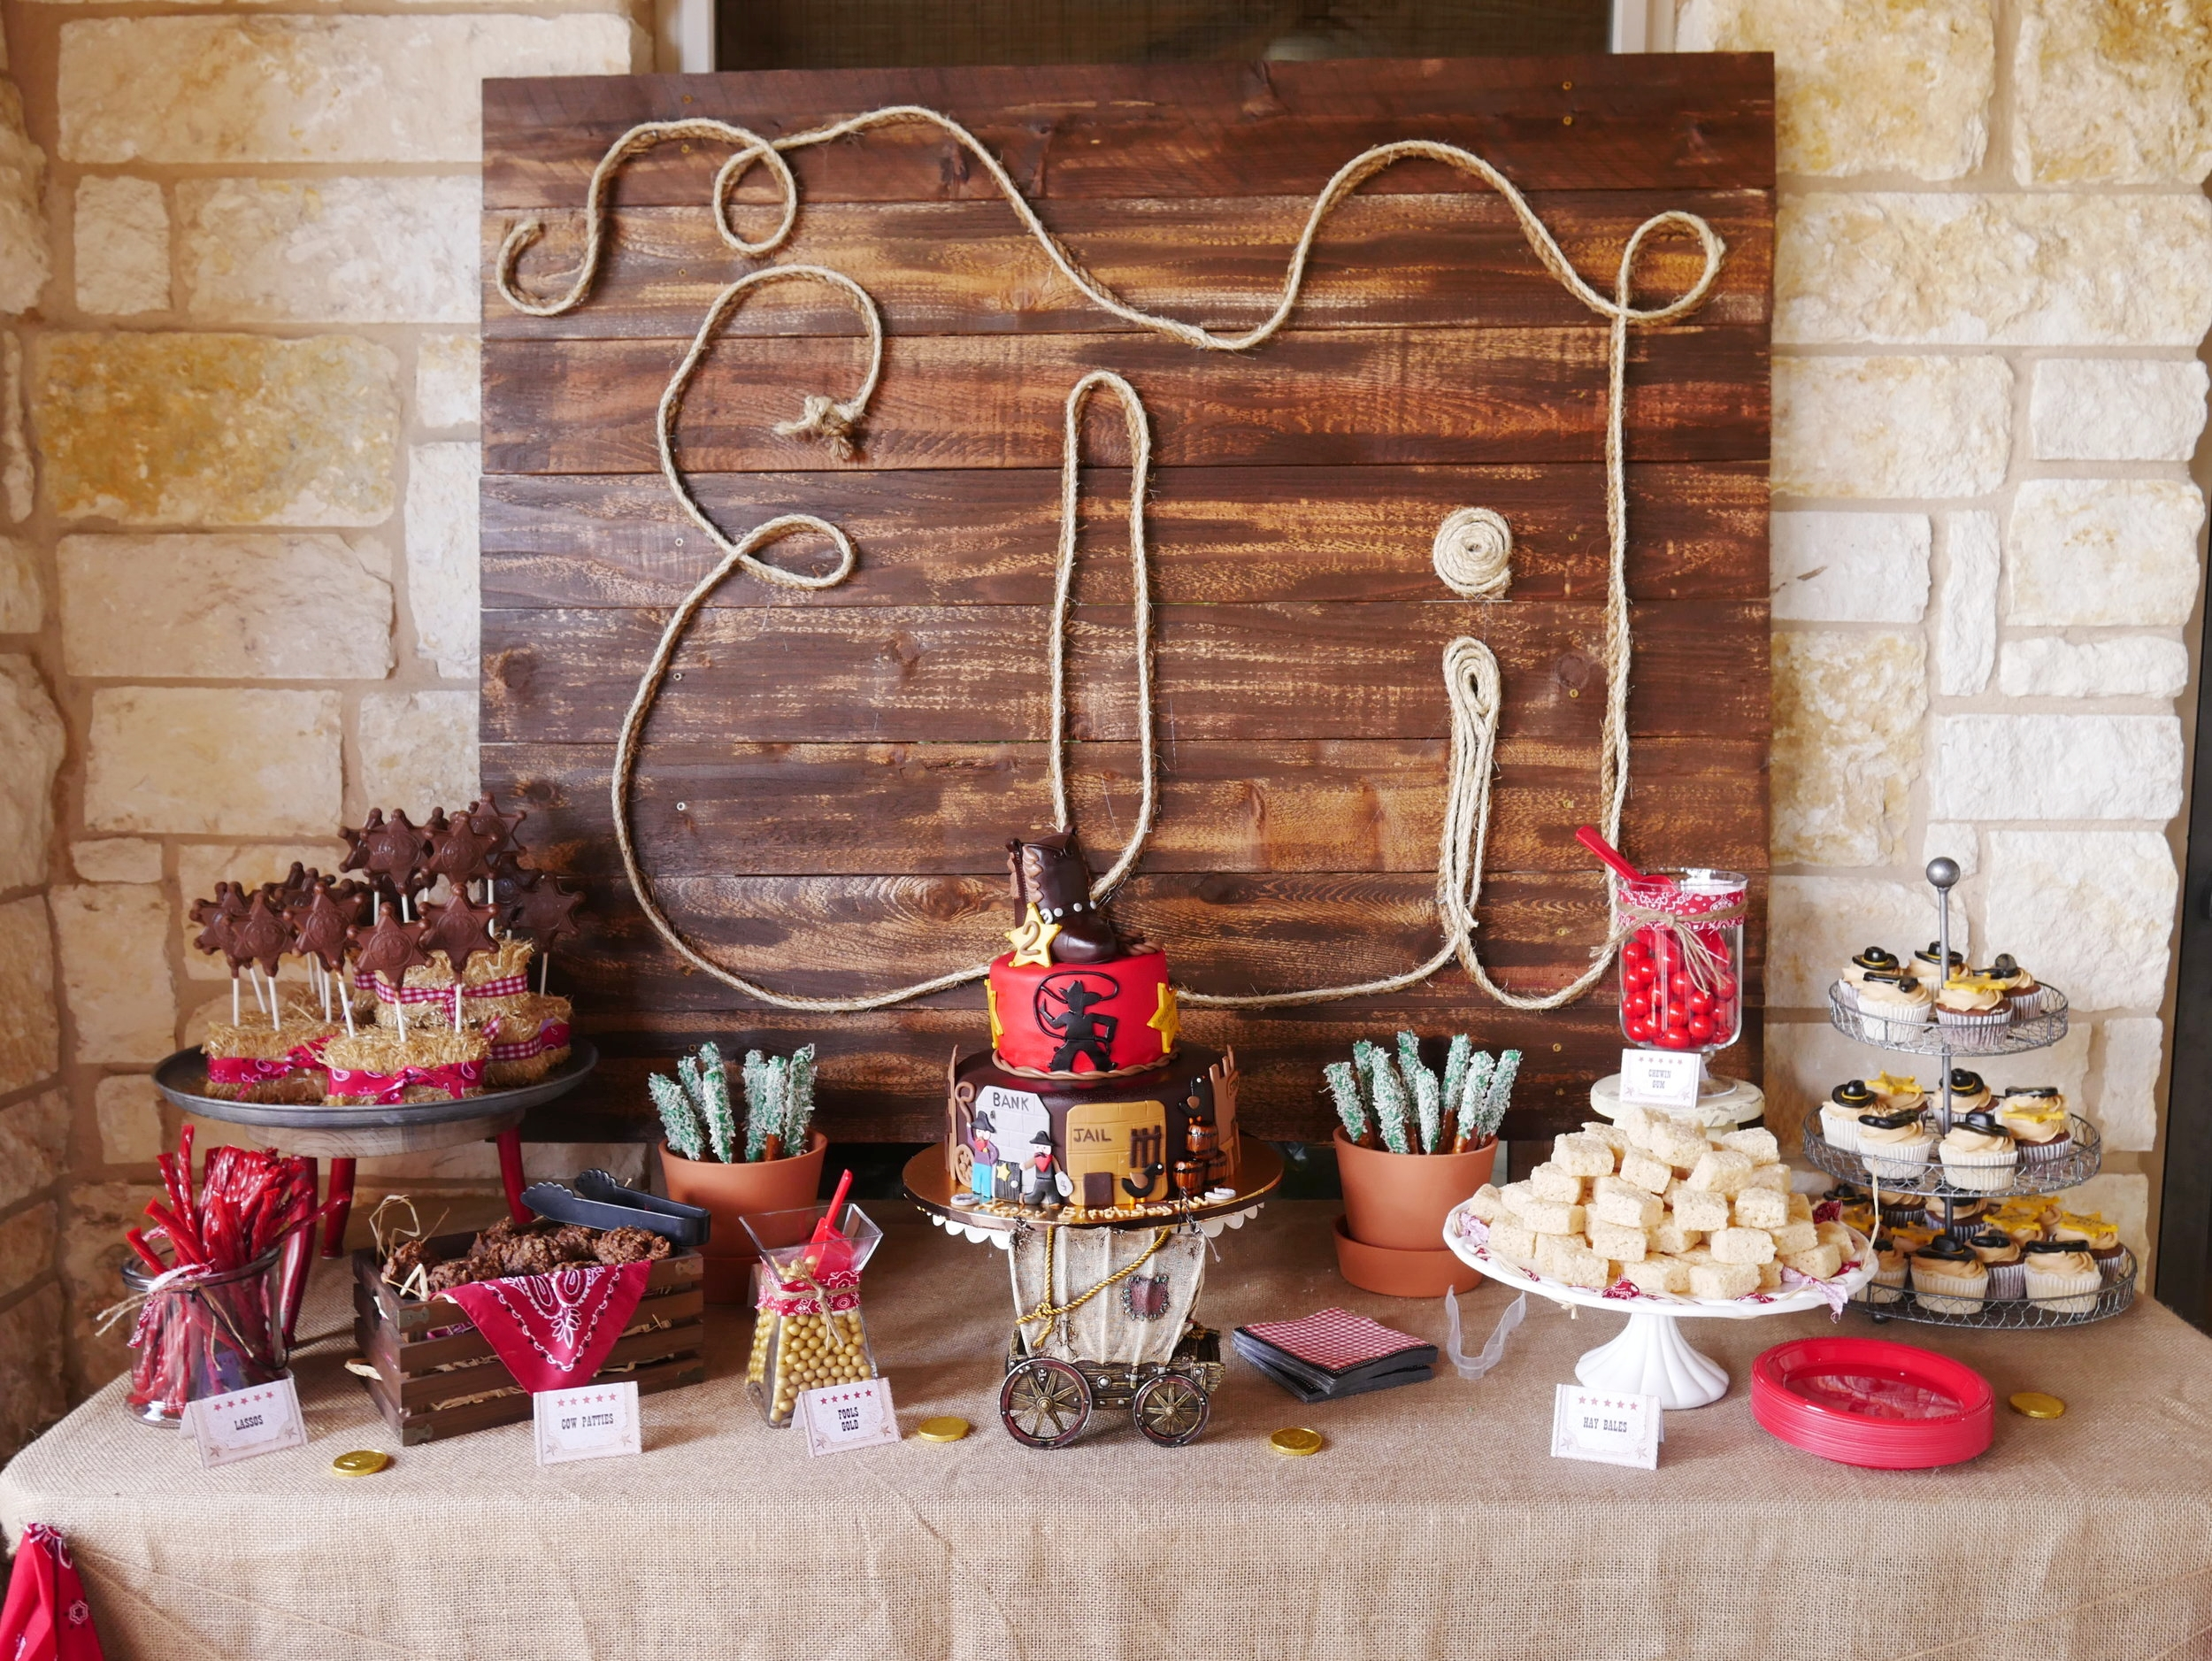 Wild West Birthday Party Dessert Table with a personalized rope sign backdrop / Styled by Carolina from MINT Event Design / www.minteventdesign.com #wildwest #cowboy #birthdayparty #partyideas #desserttable